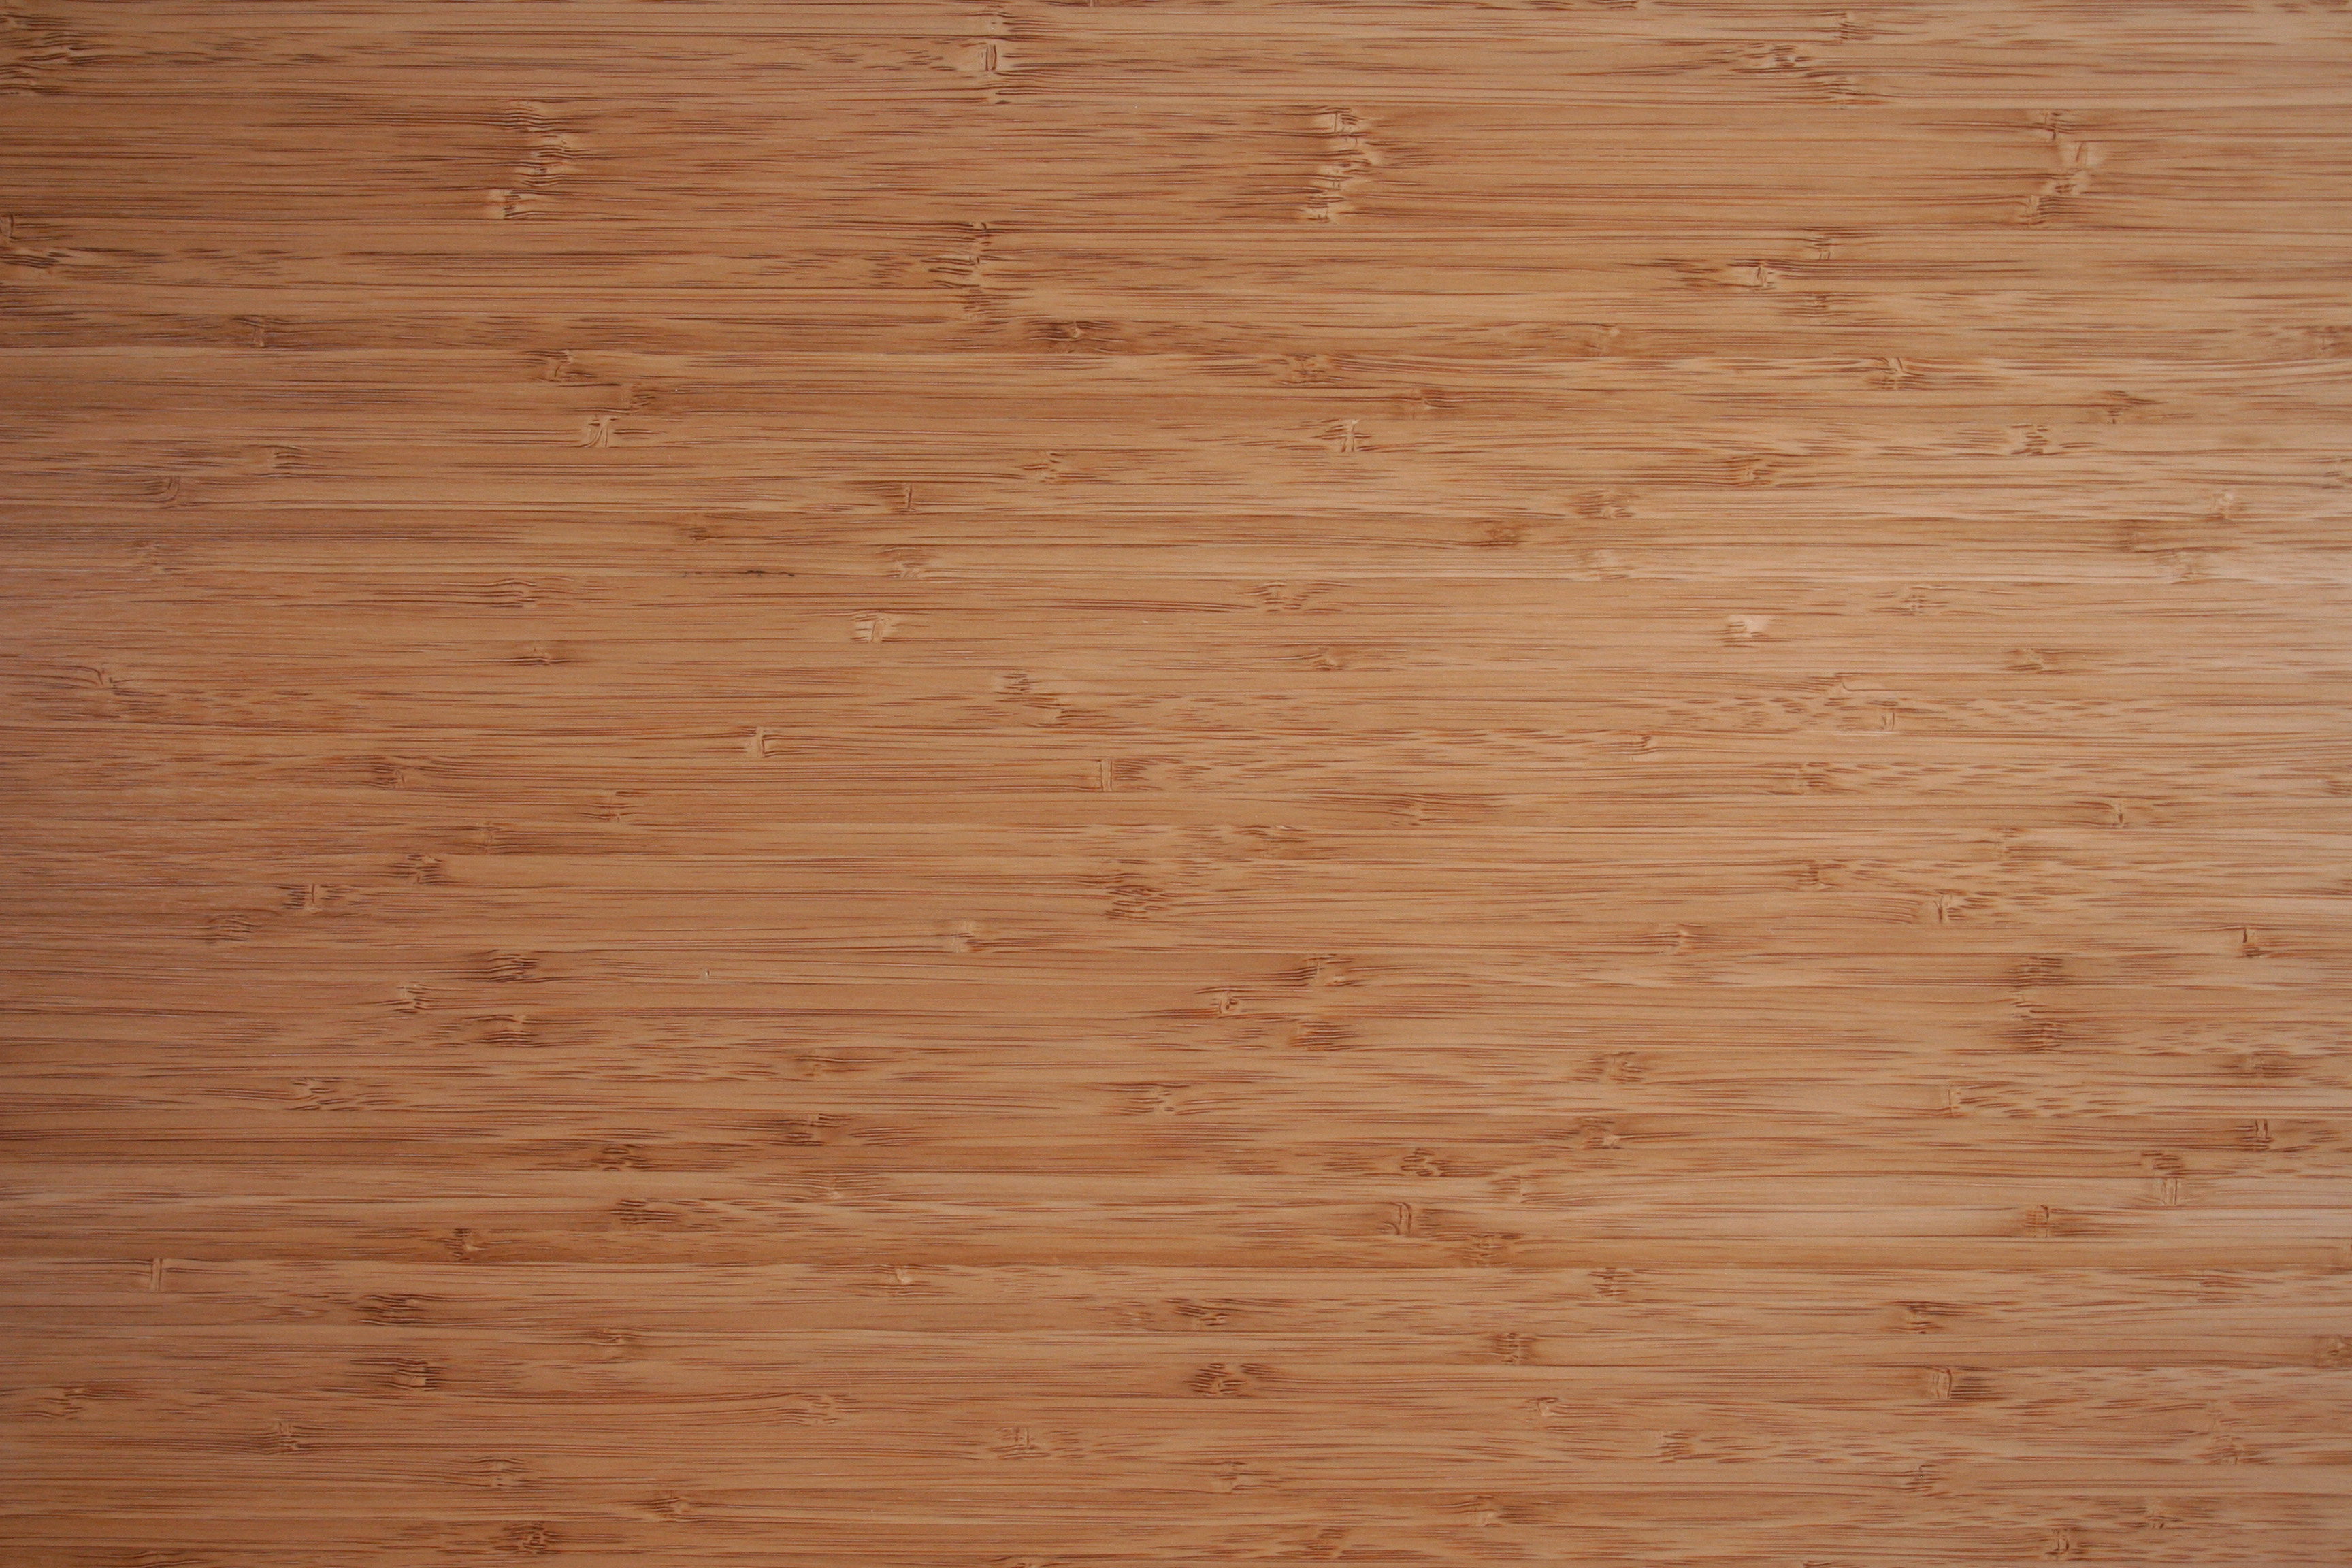 Bamboo Texture Wood Floor Natural Pattern